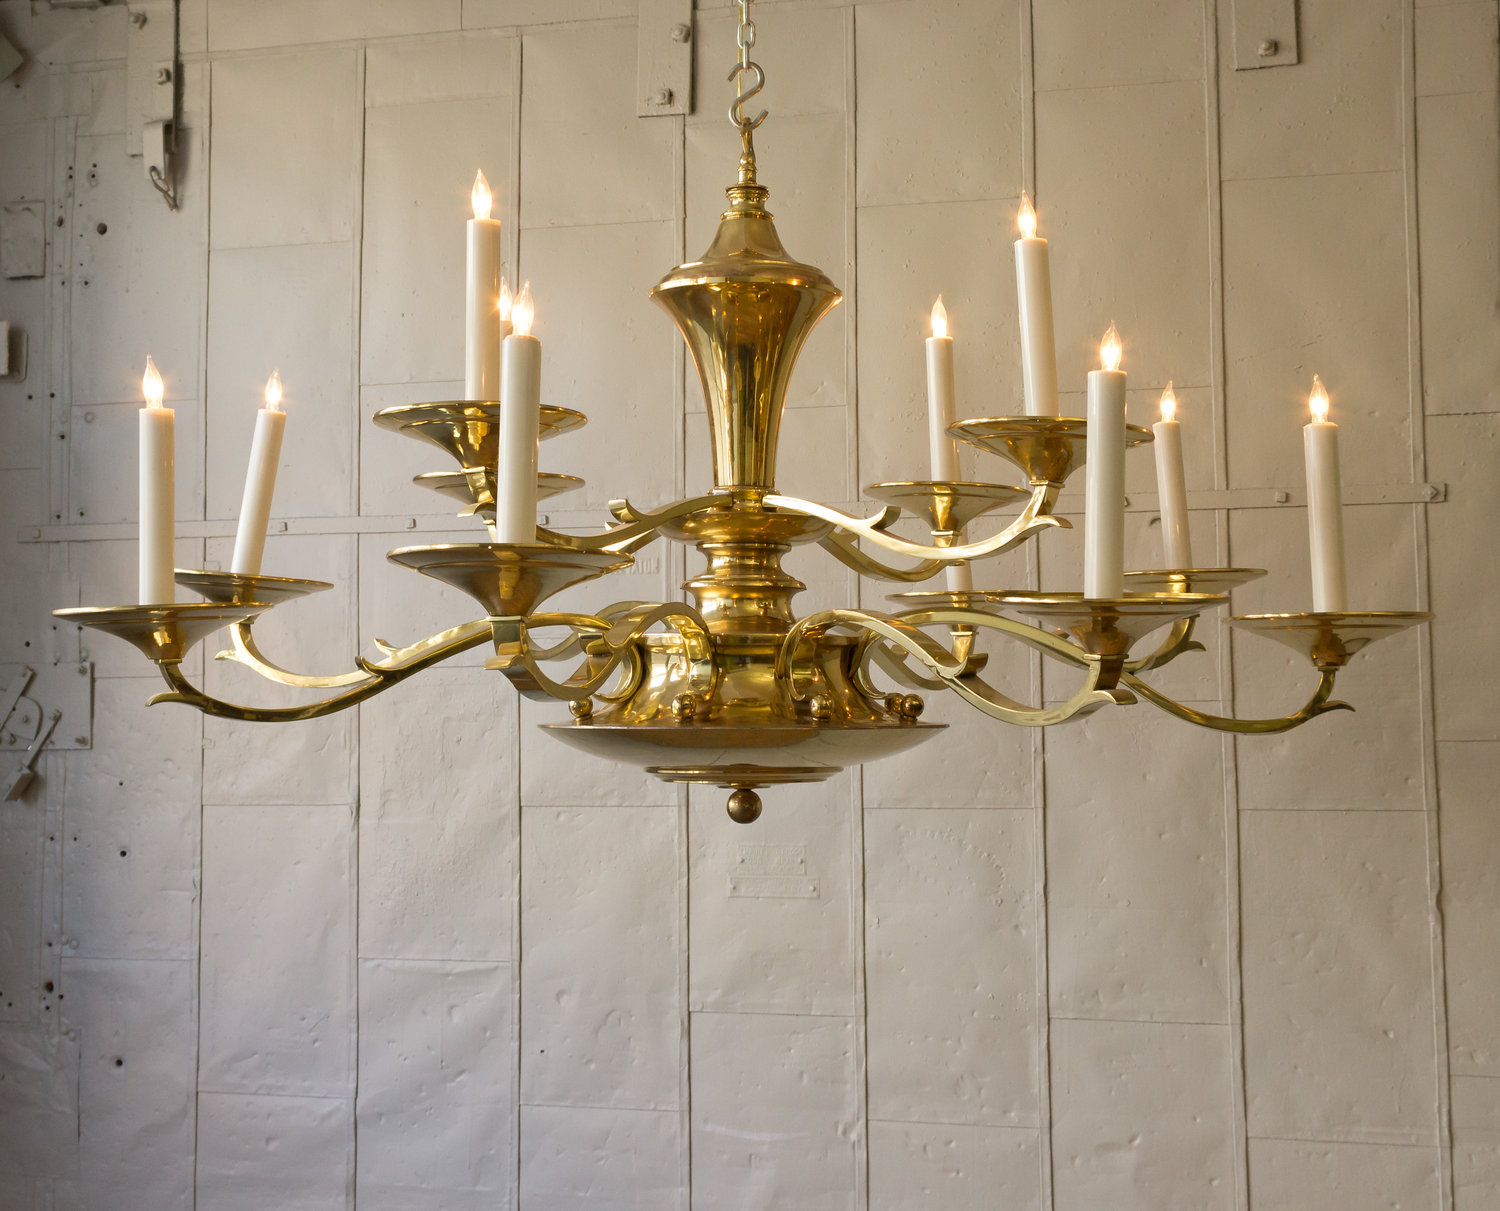 Large American Tiered Brass Chandelier